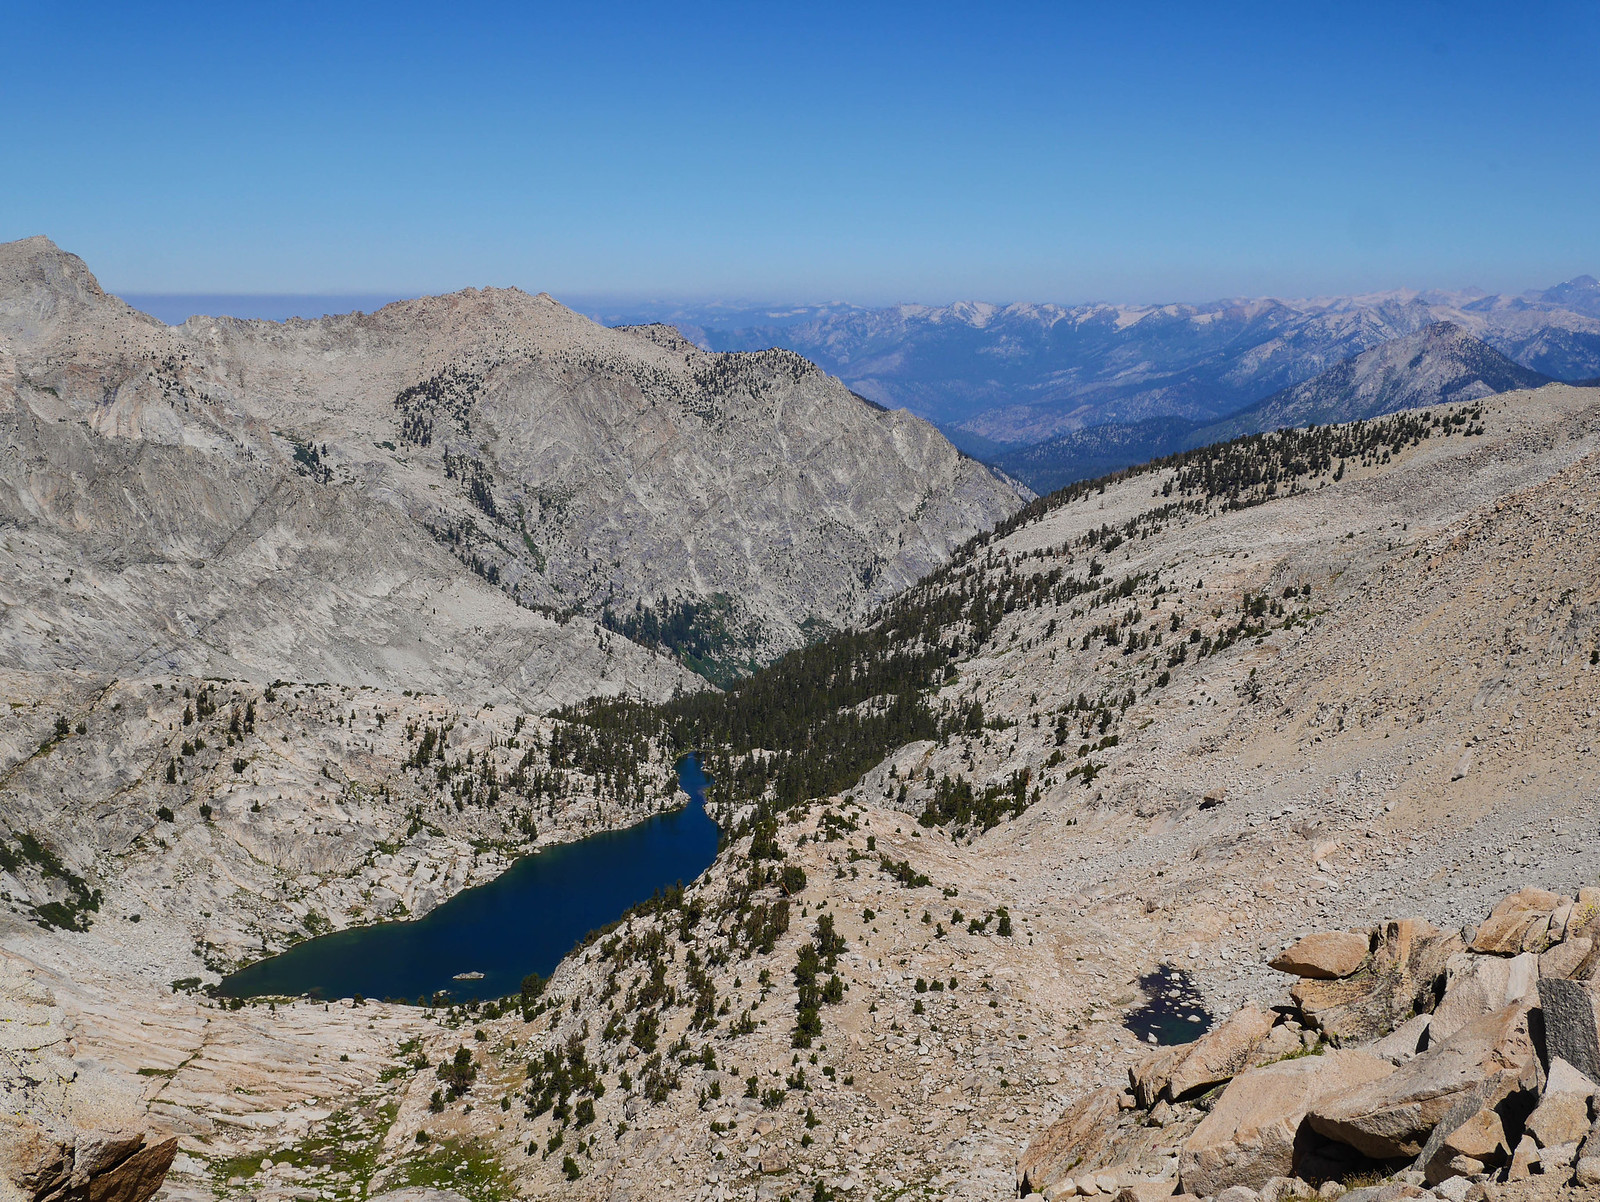 Colby Lake and the Great Western Divide from Colby Pass